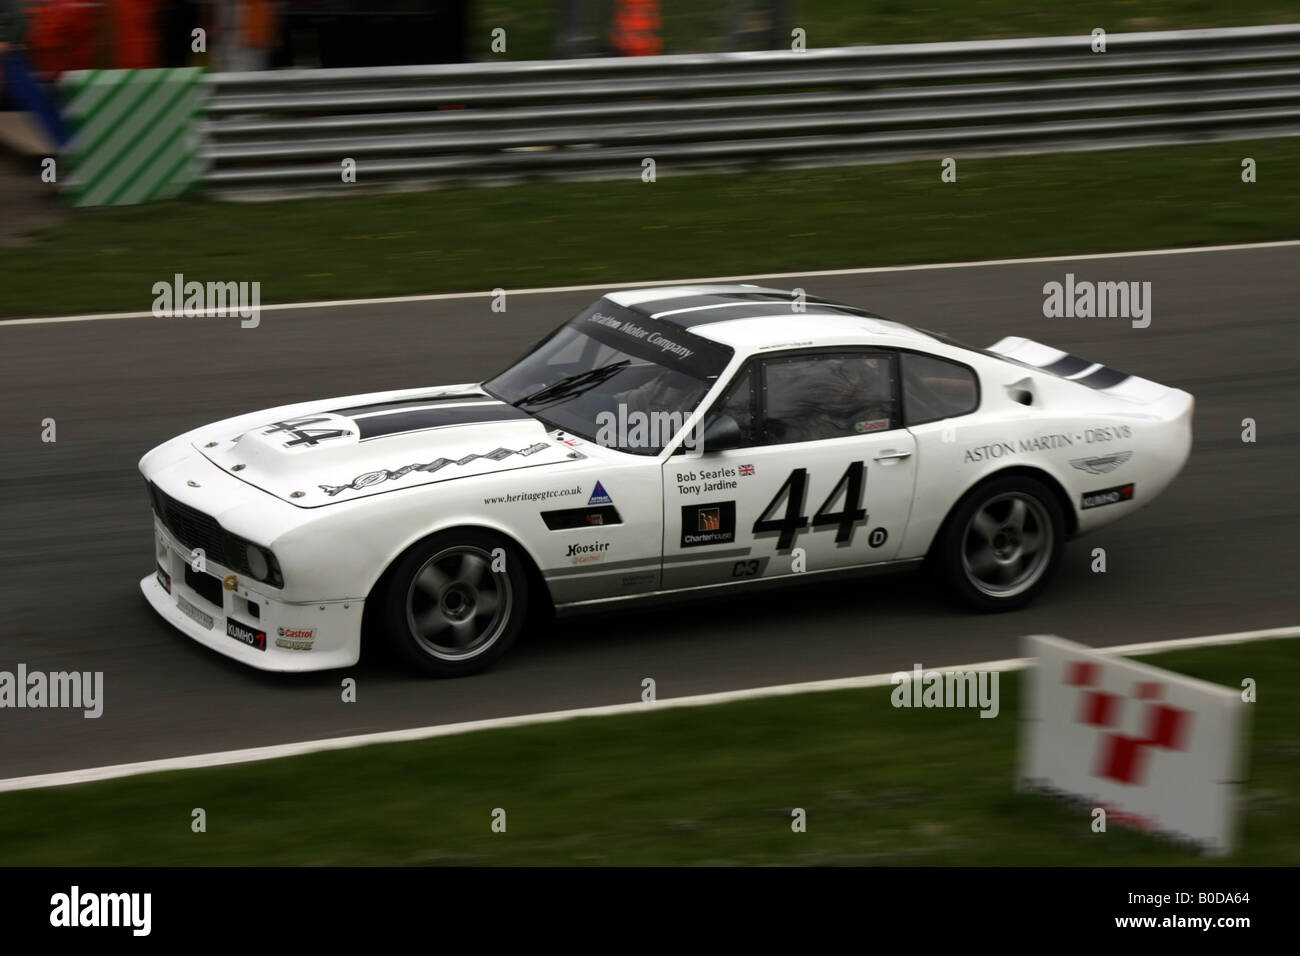 Tony Jardine und Bob Searles Aston Martin DBS V8 in Brands Hatch Mai 2008 Stockbild